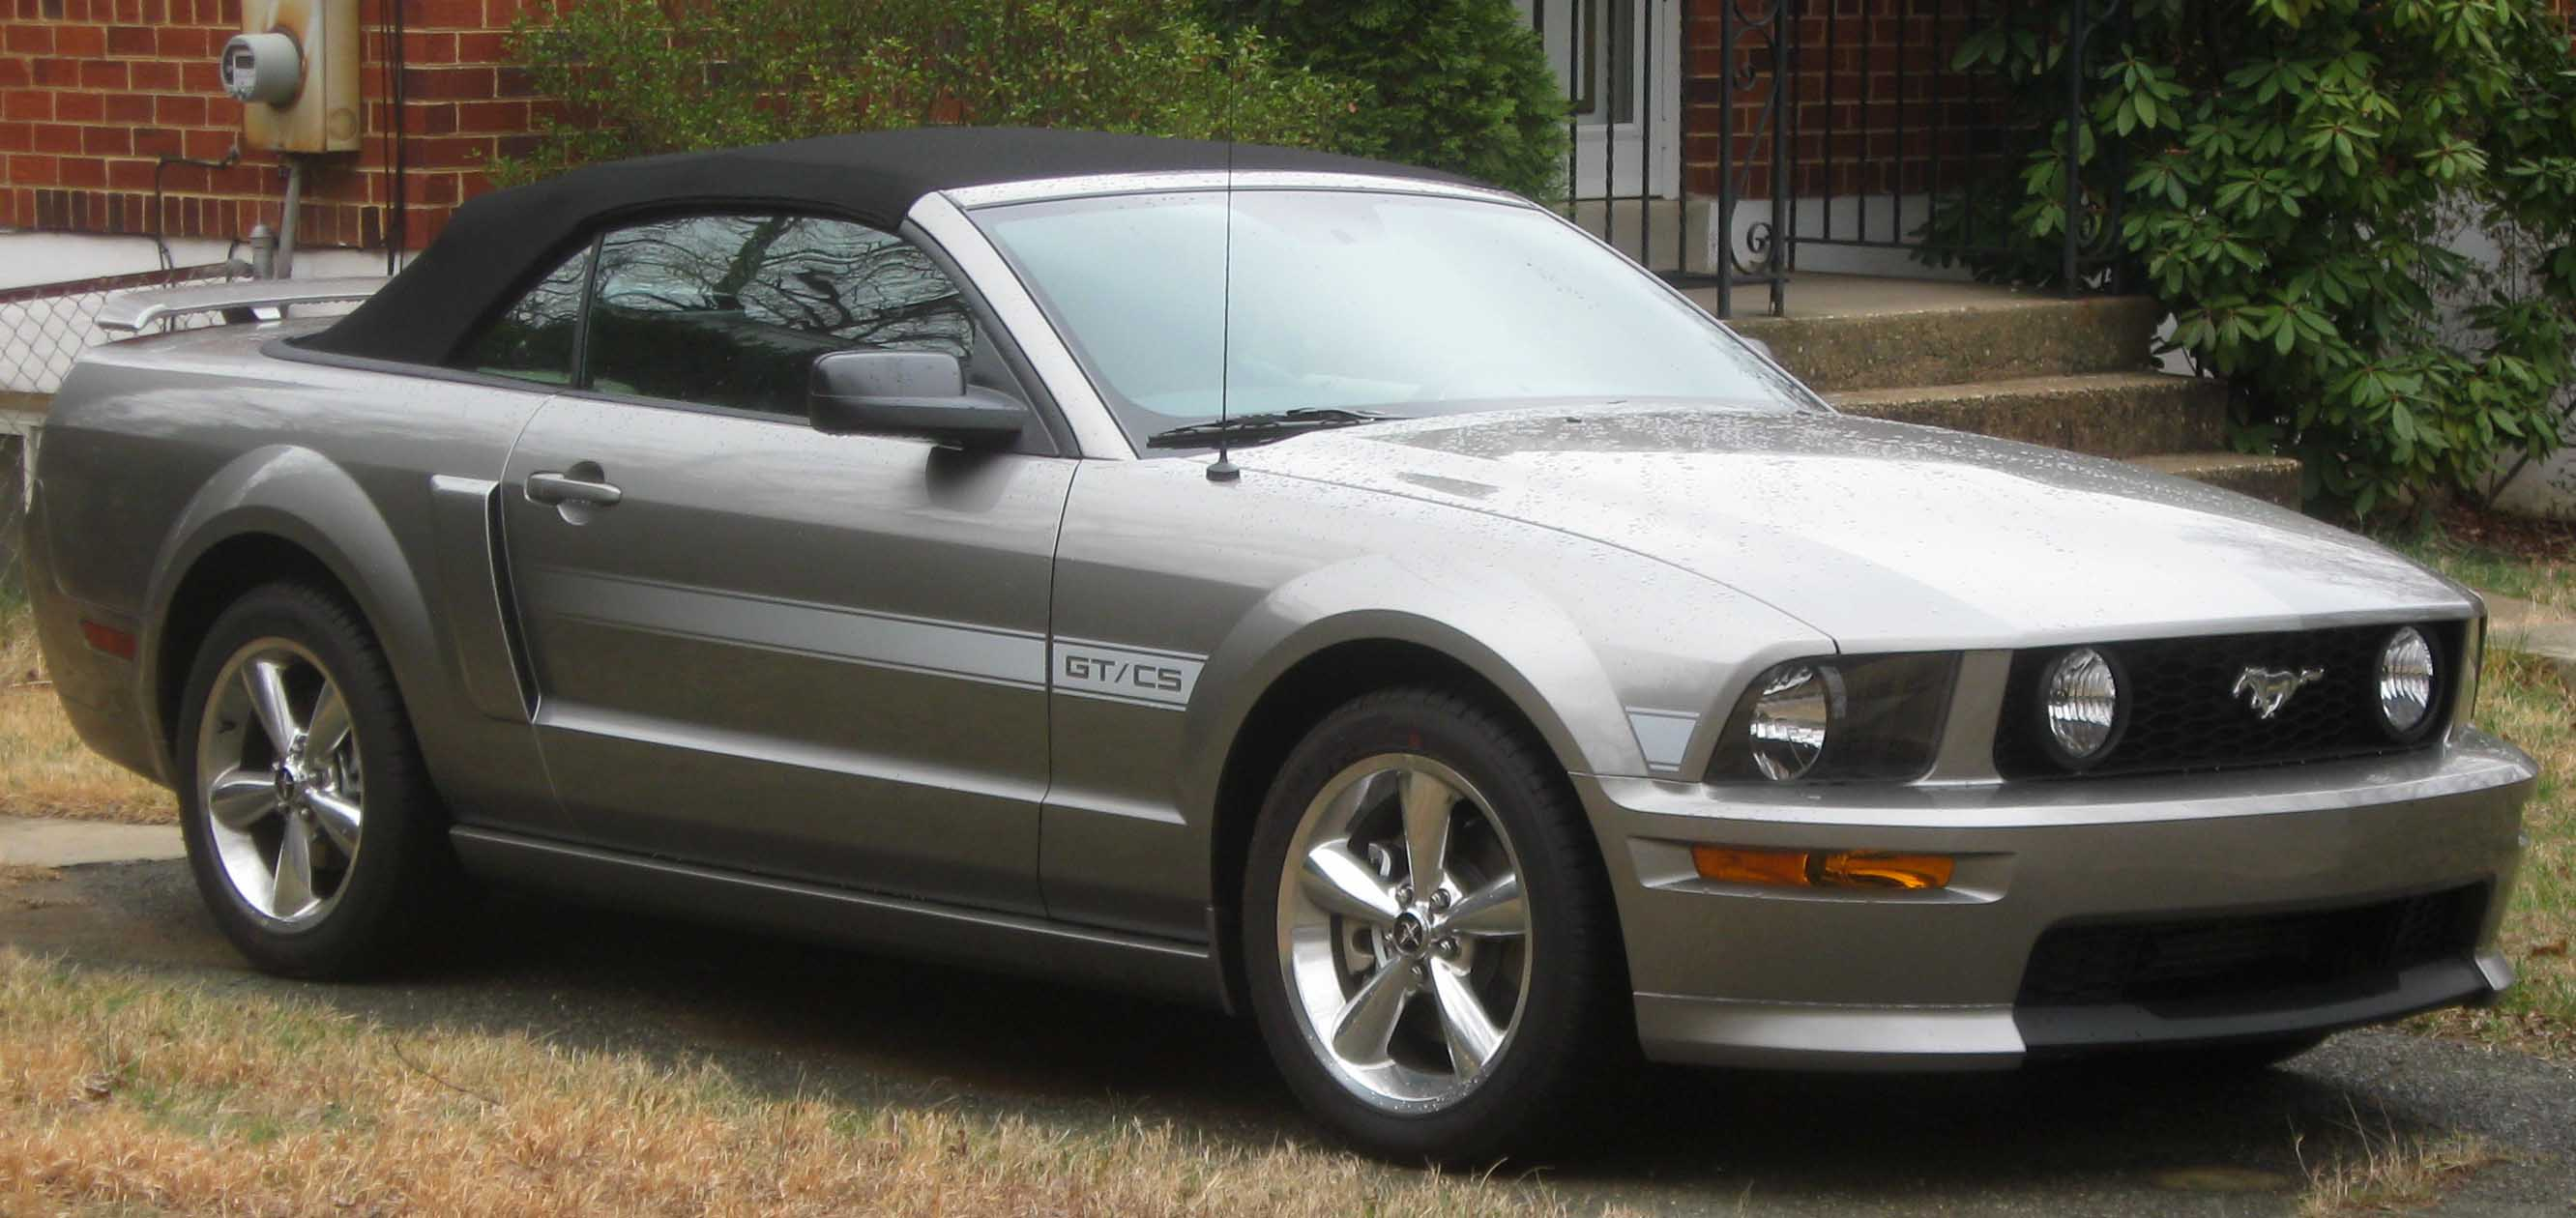 Ford Mustang #16